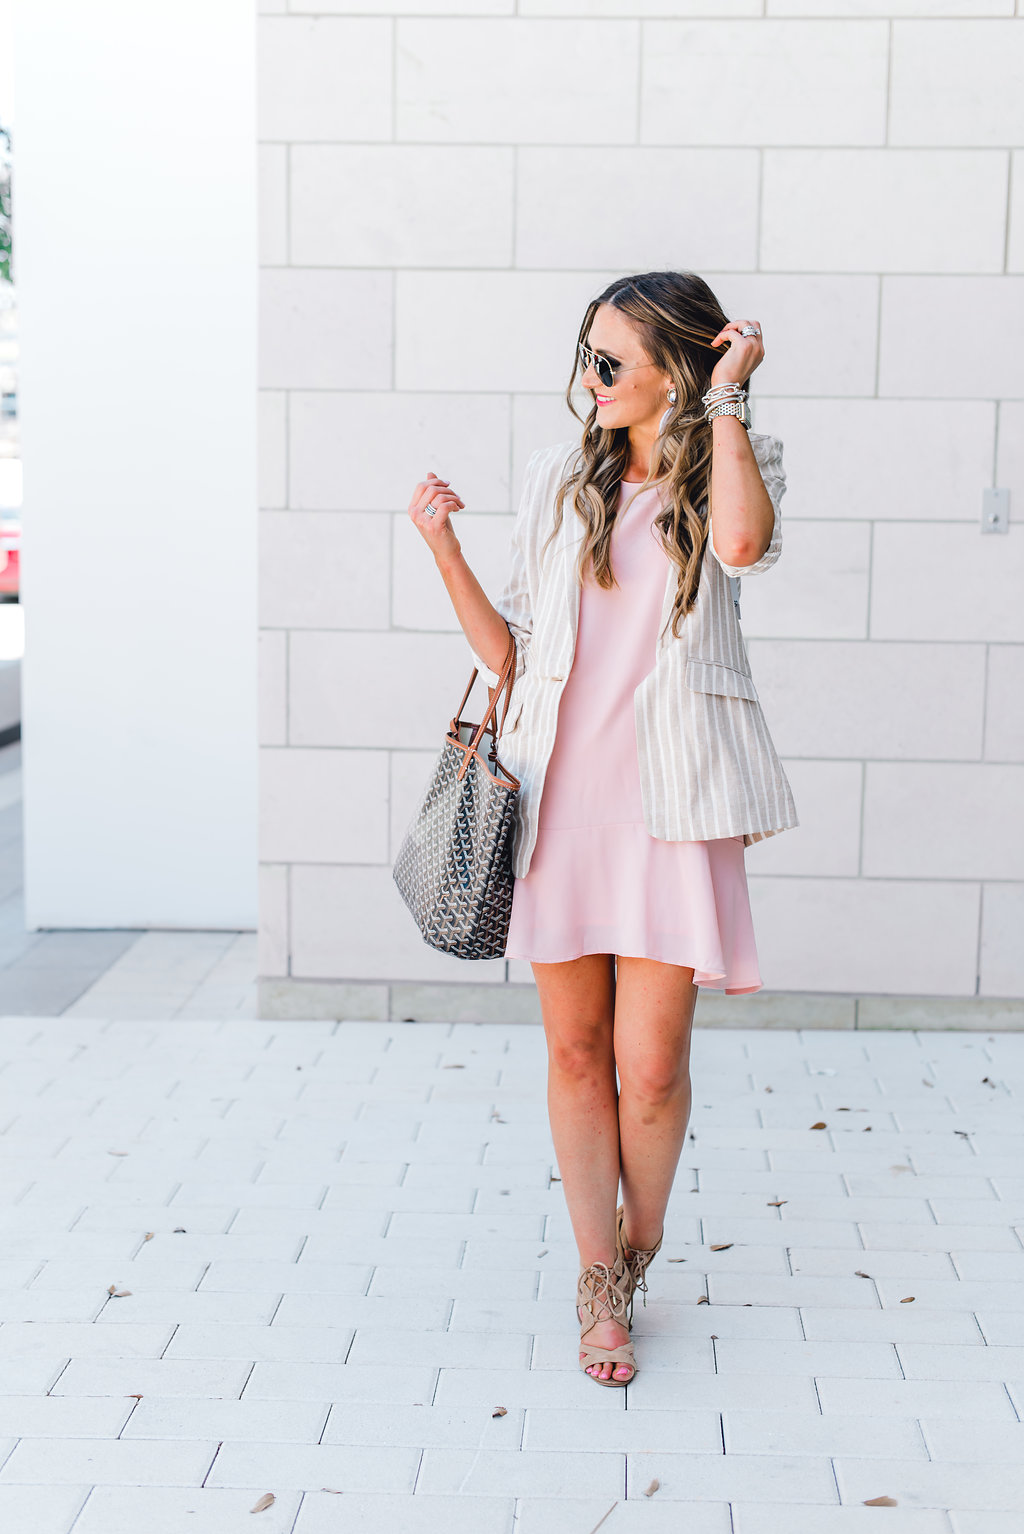 Pink ruffled racerback dress styled 3 ways - Pink Ruffle Dress Worn Three Ways! featured by popular Texas fashion blogger, Style Your Senses